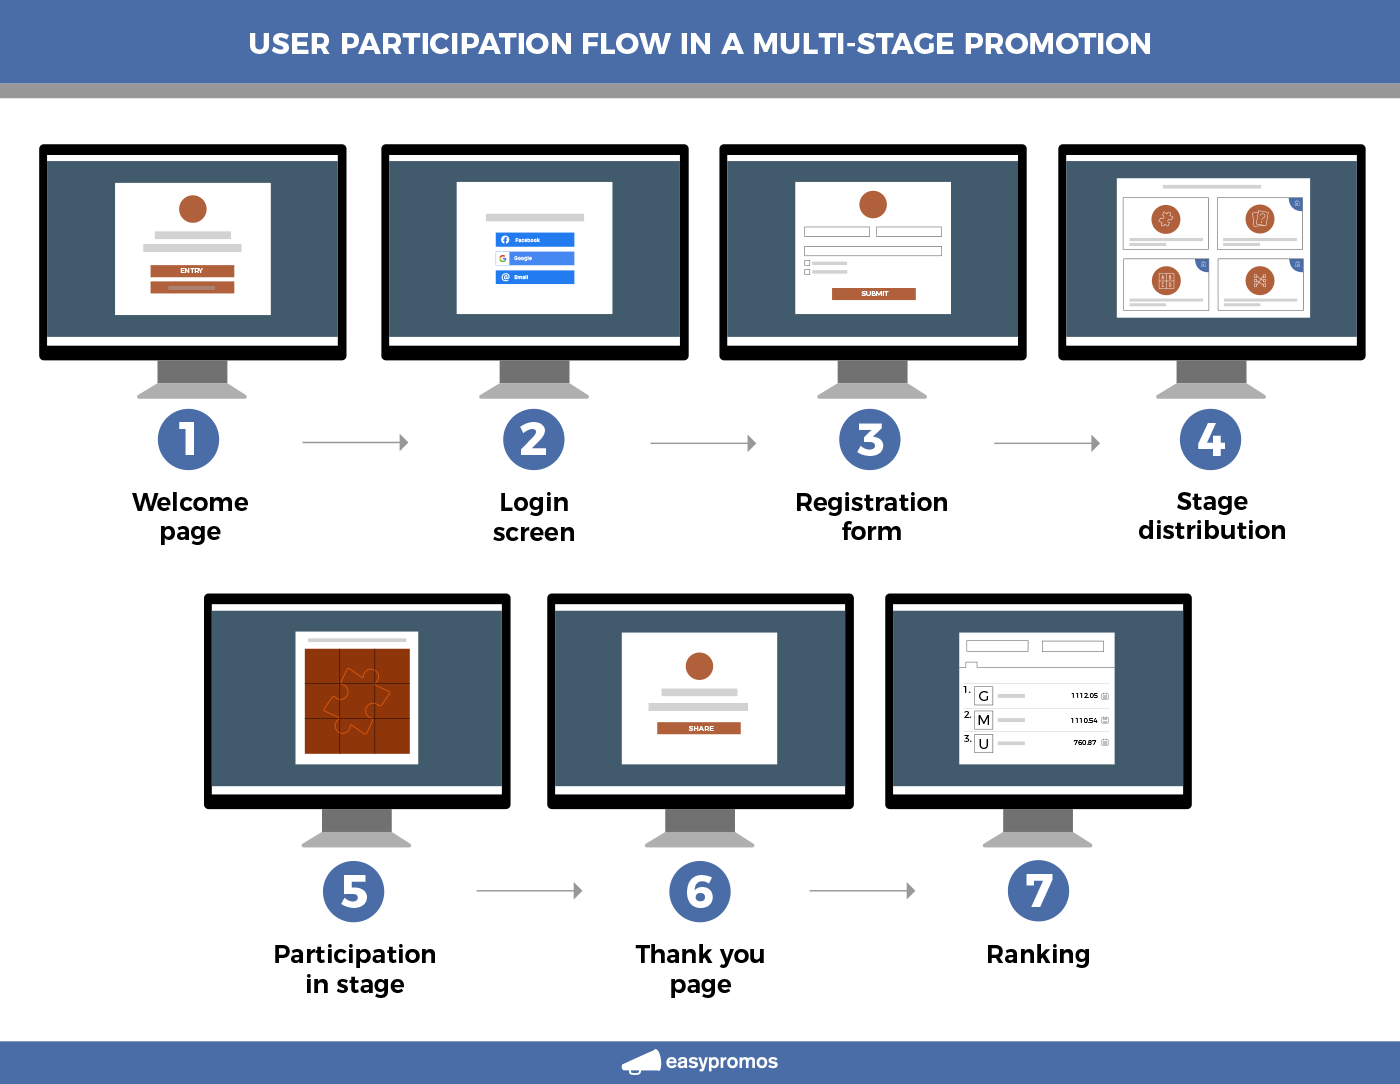 user_participation_flow_multistage_promotion.png